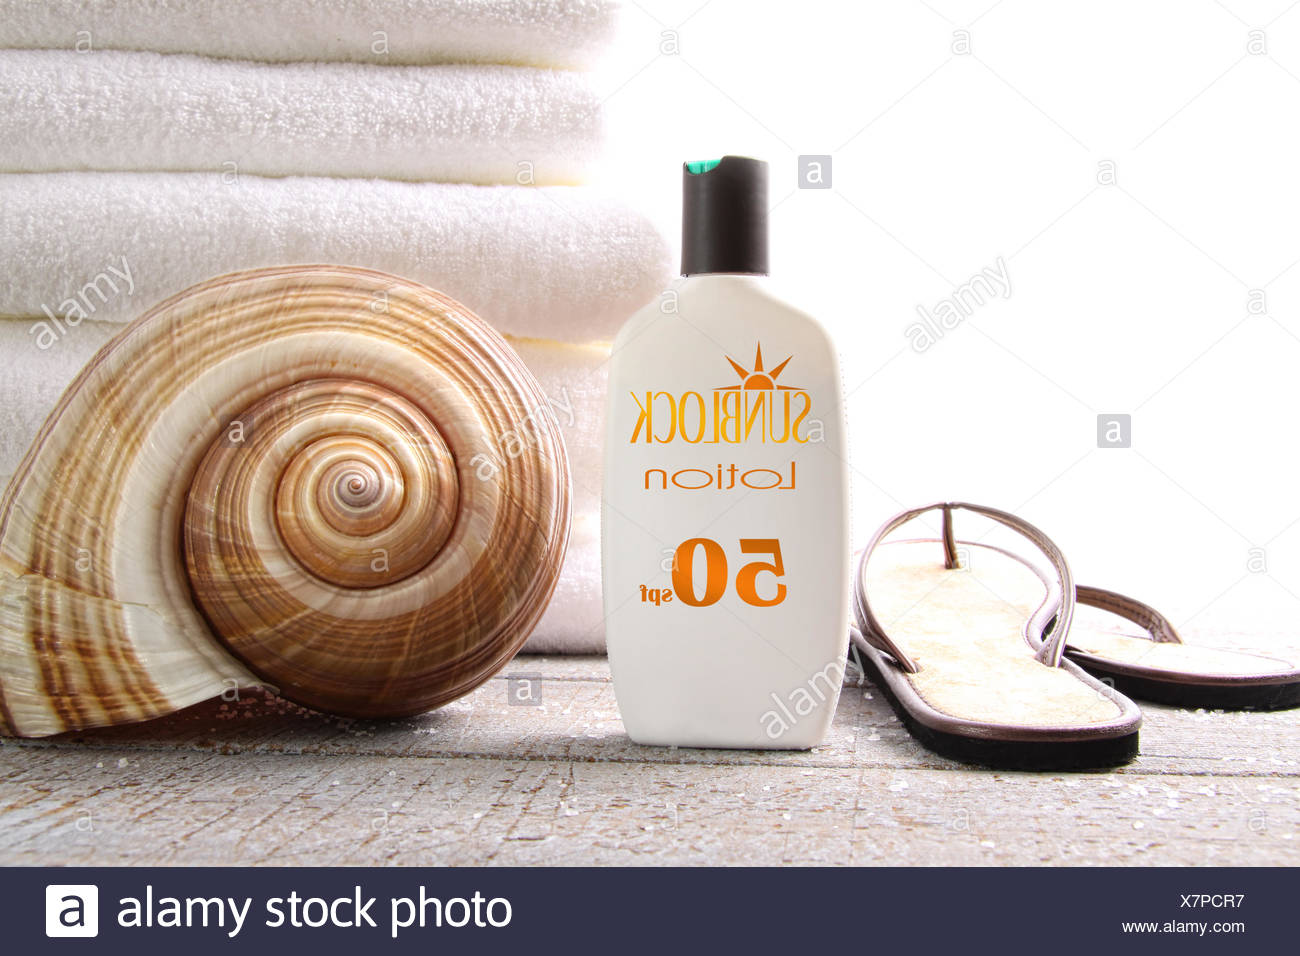 Sunblock lotion, sandals and white towels - Stock Image